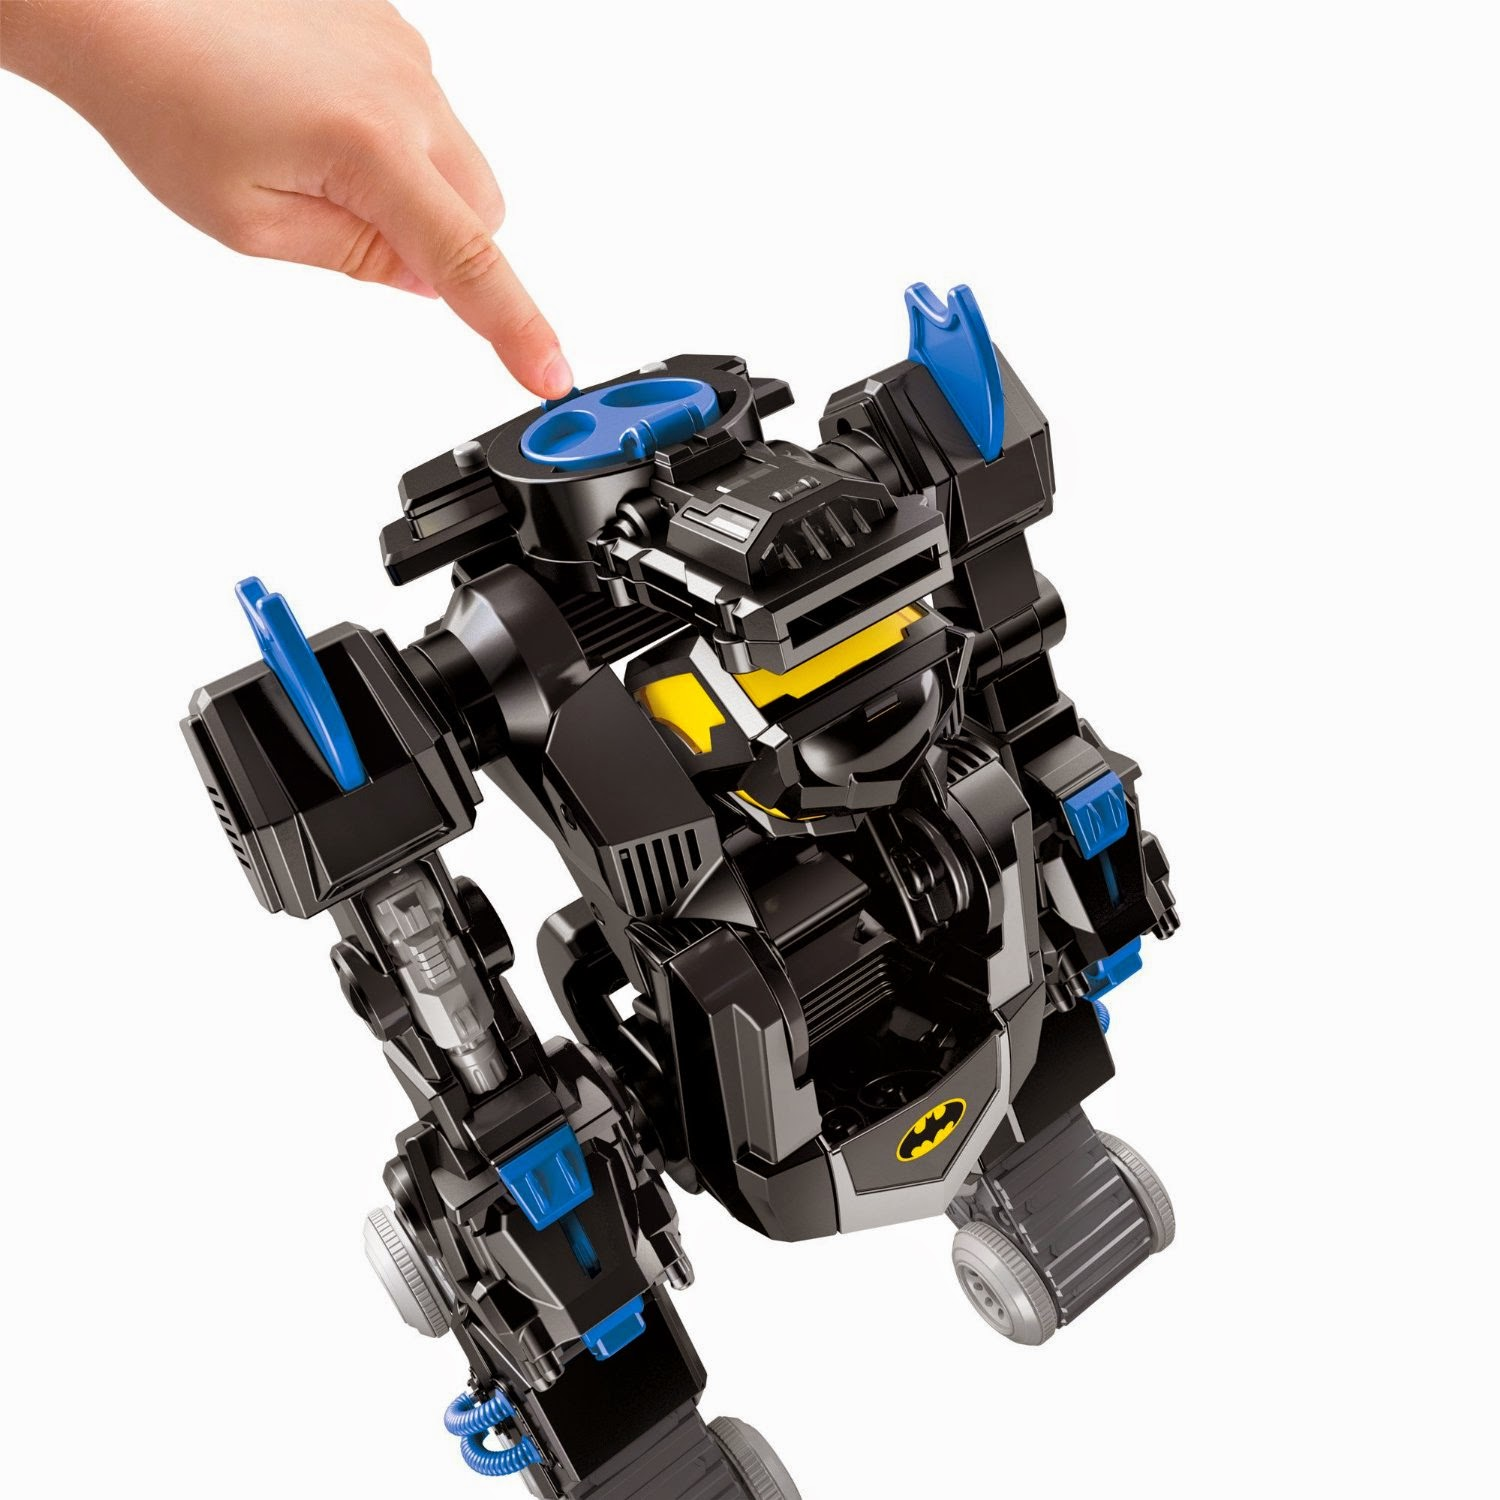 Fisher-Price Imaginext Batbot